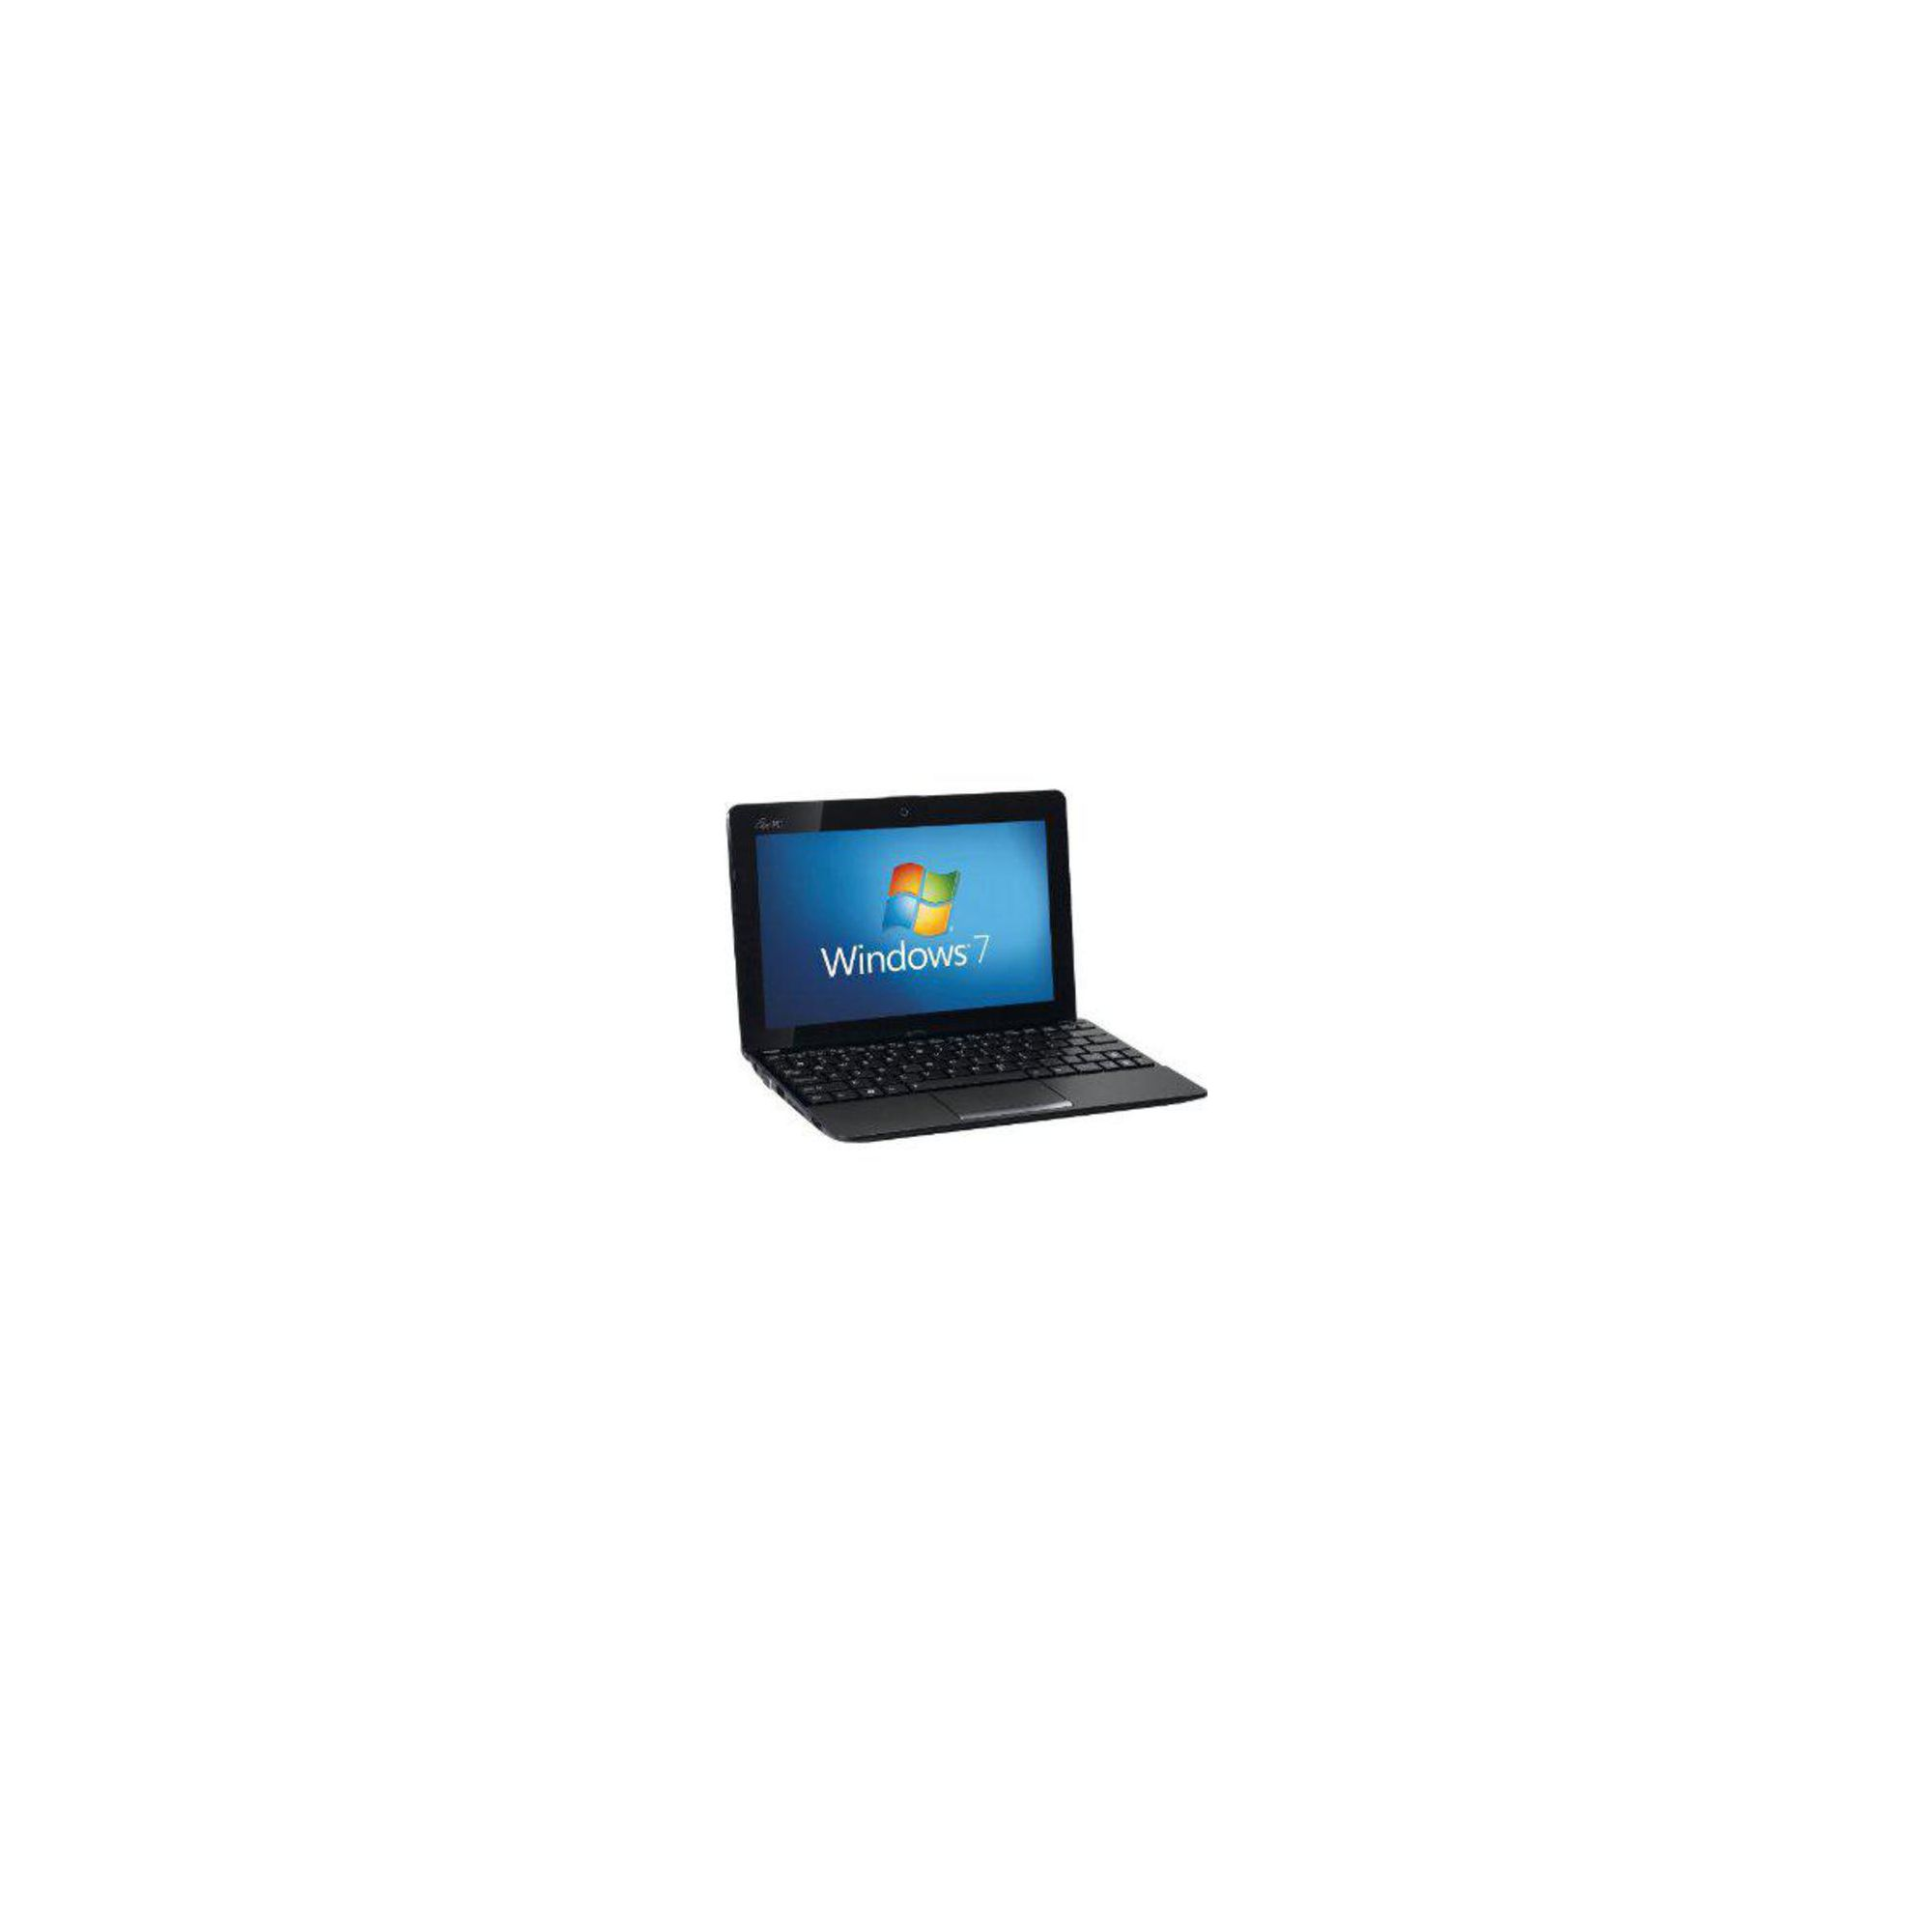 ASUS - RED GLOSS - INTEL ATOM N2600 1GB 320GB SHARED GRAPHICS CAM 10.1 INCH WINDOWS 7 STARTER at Tesco Direct